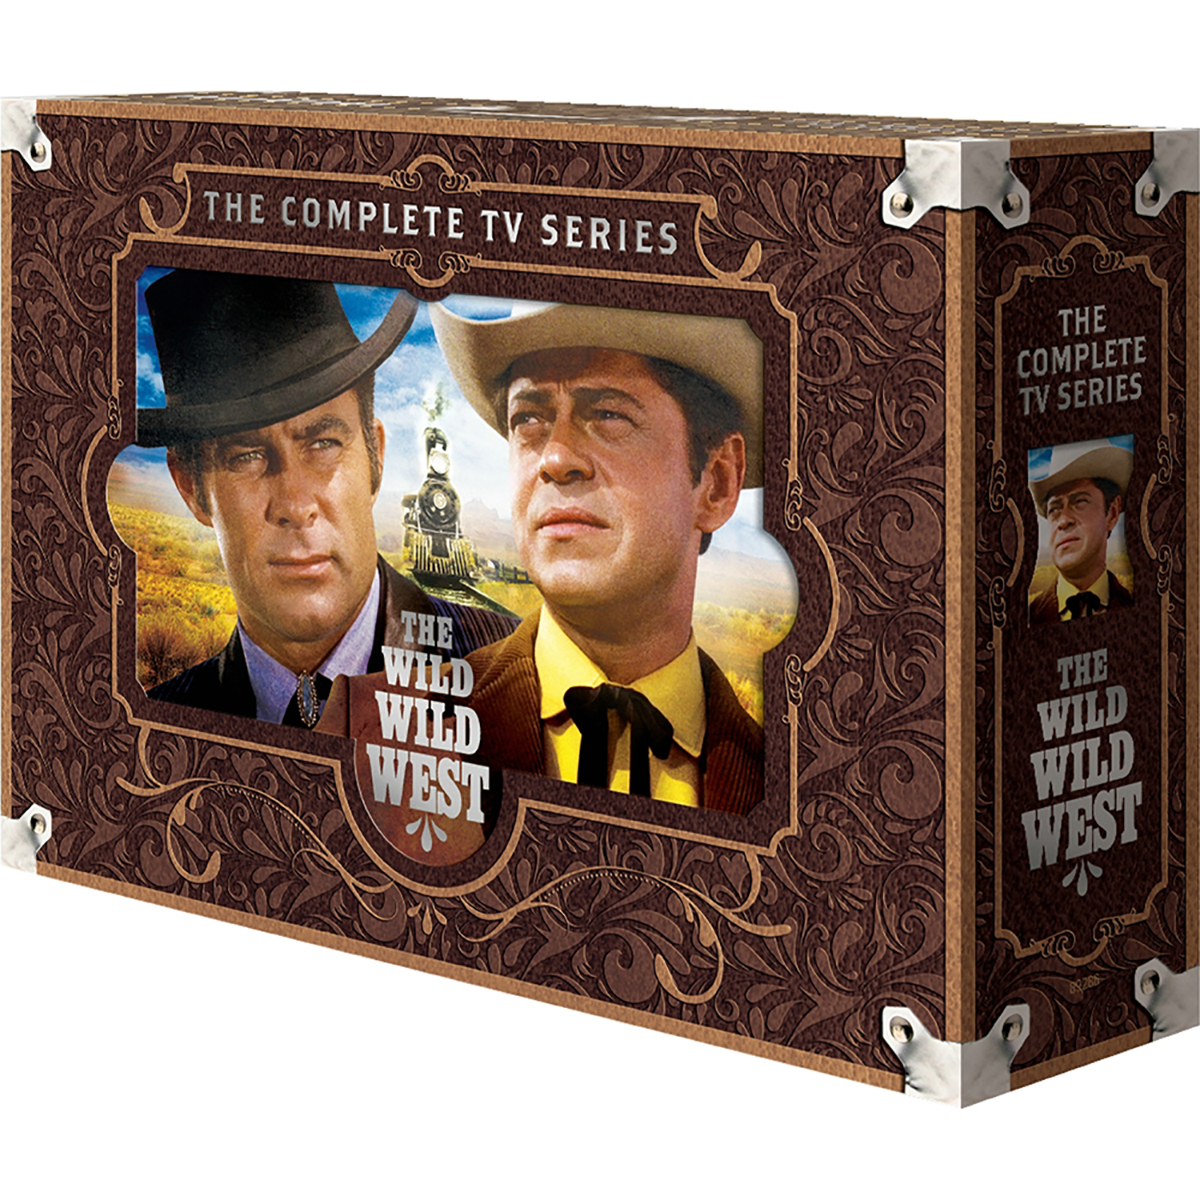 The Wild Wild West: The Complete Series DVD -  DVDs & Videos 192-73786